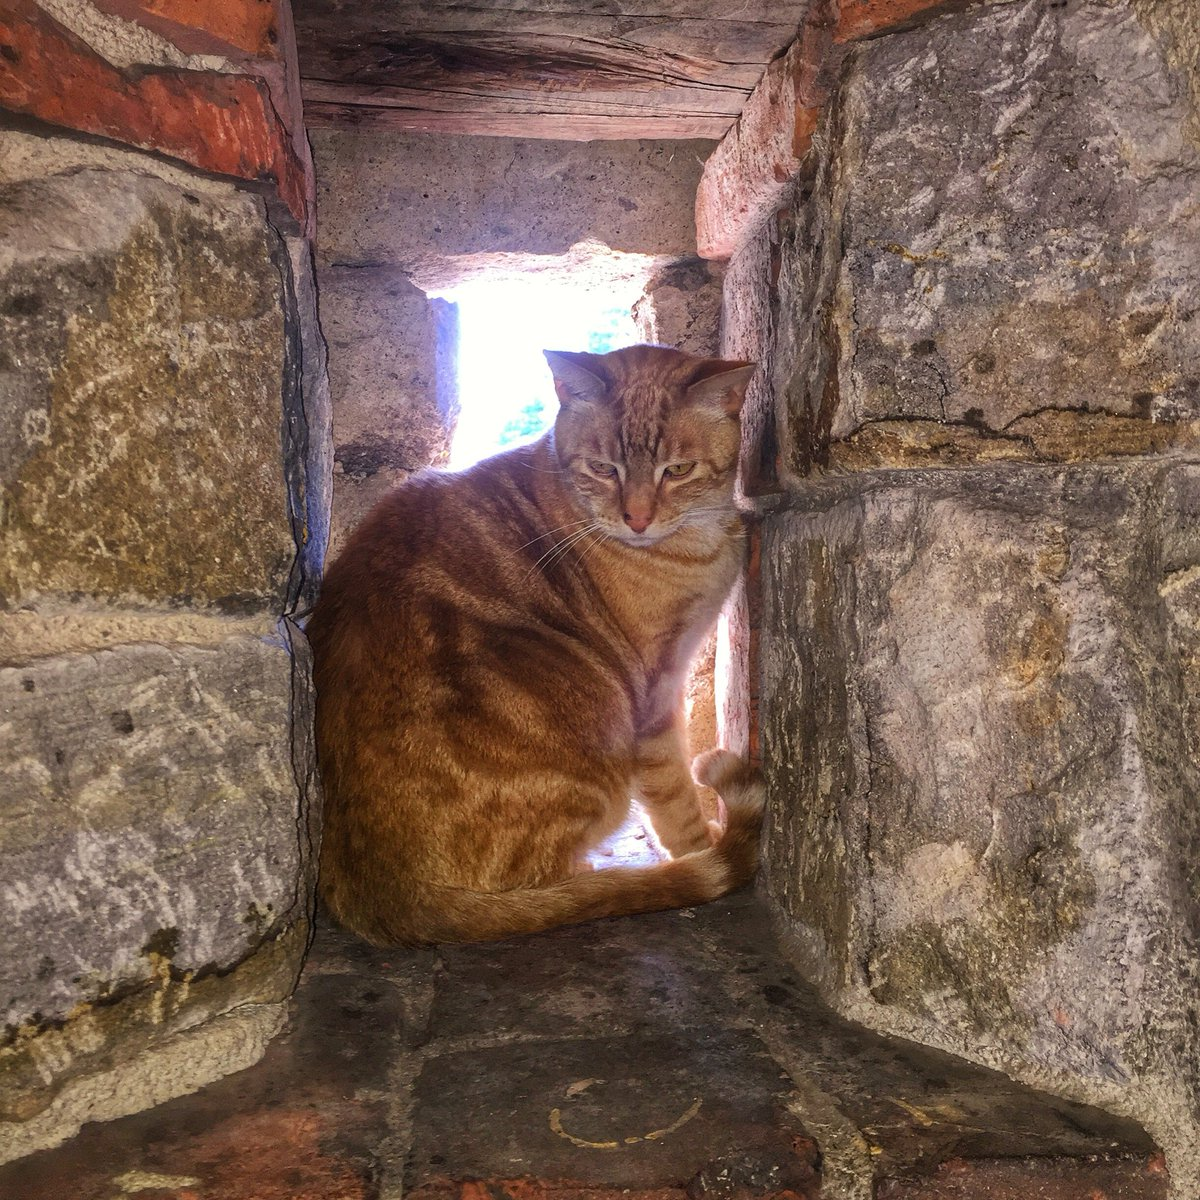 castello di amorosa on twitter castle cat sirlancelot in the house